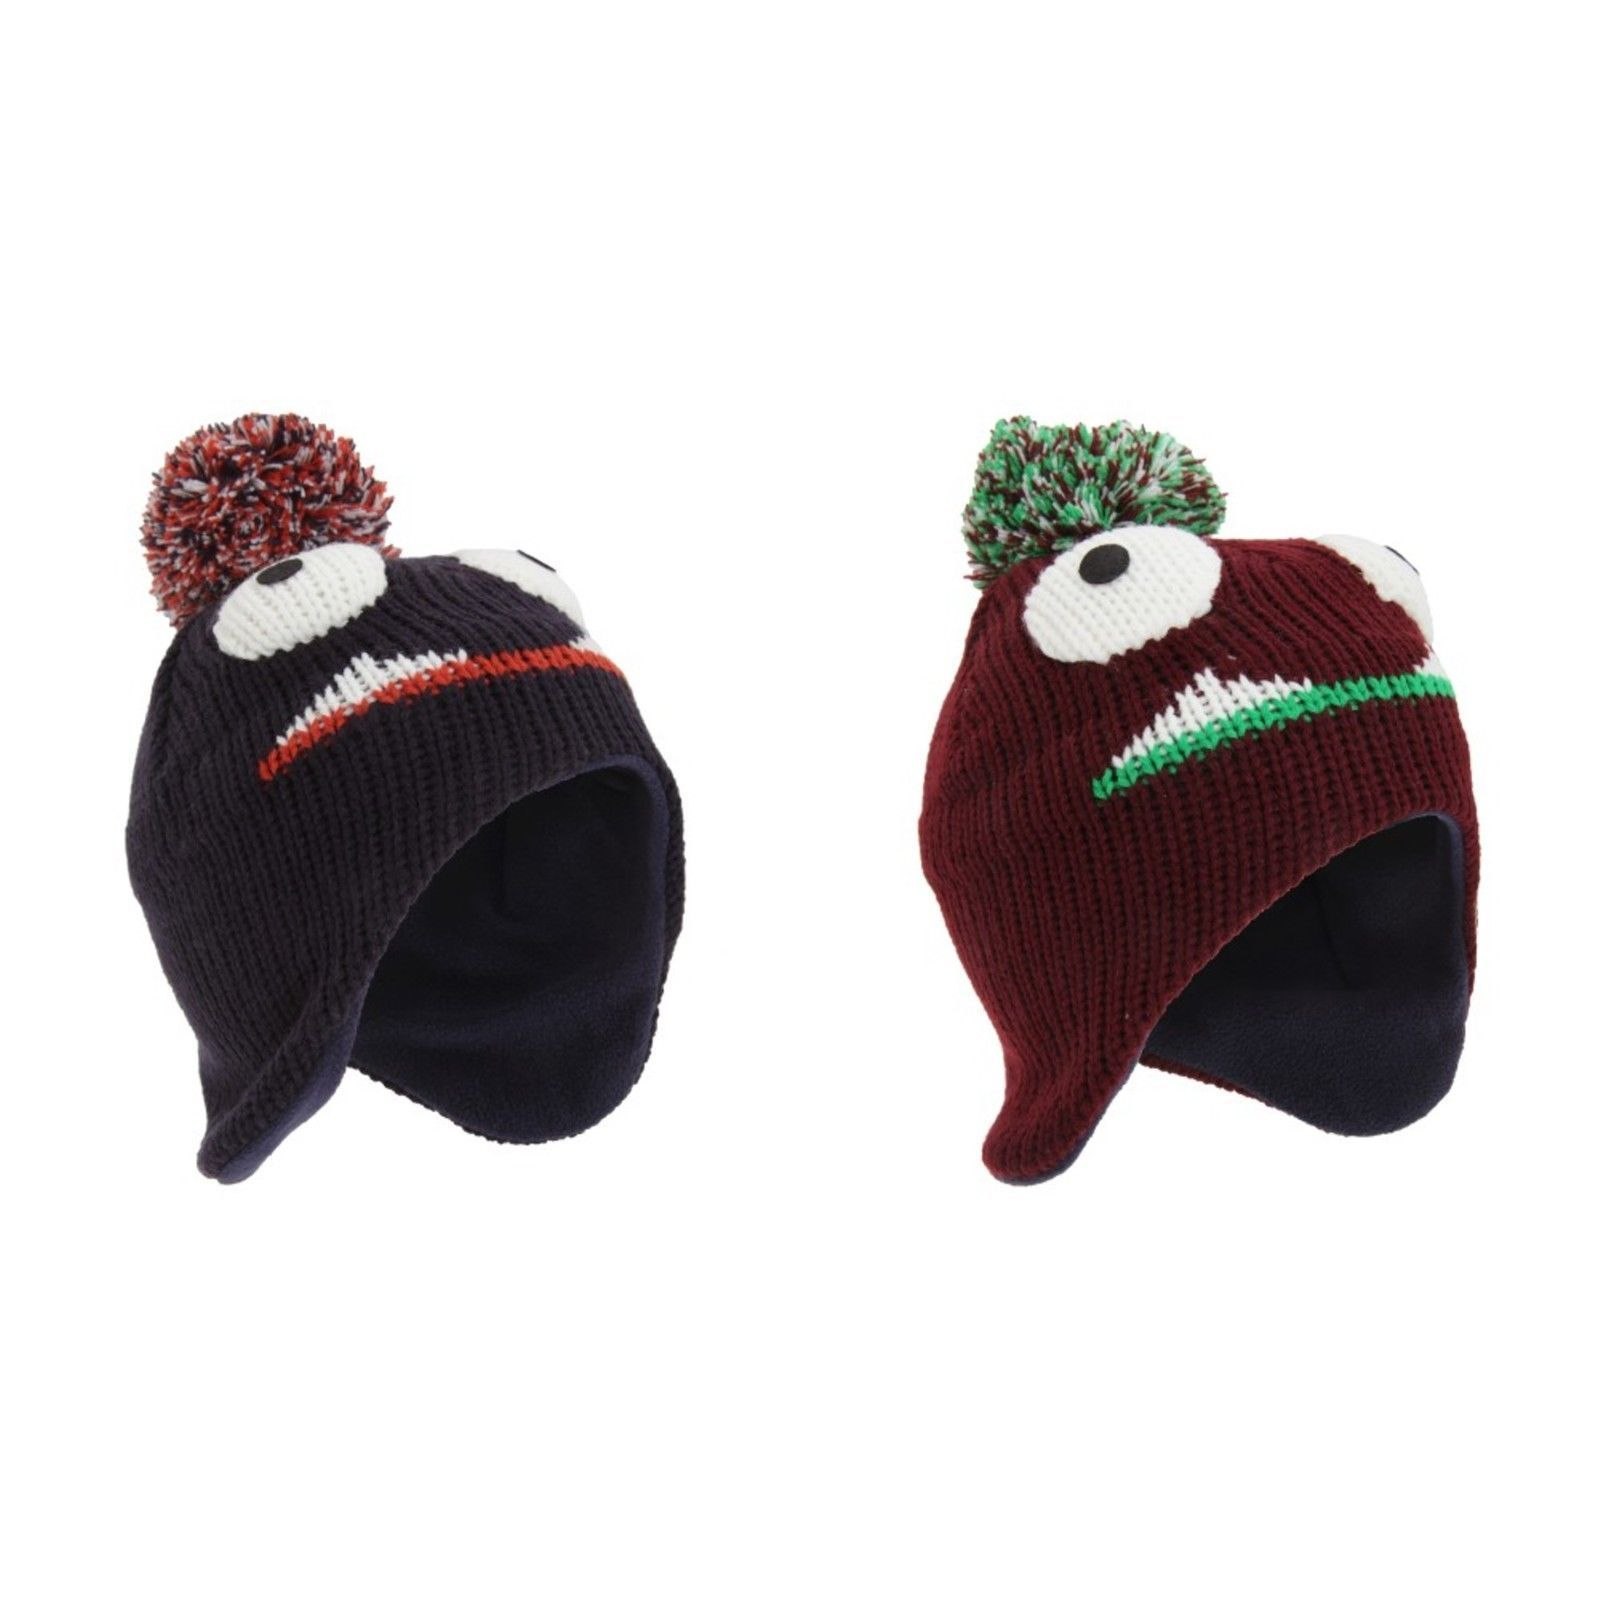 f5f0a6cde5ff8 Childrens Kids Monster Design Peruvian Style Winter Bobble Hat ...